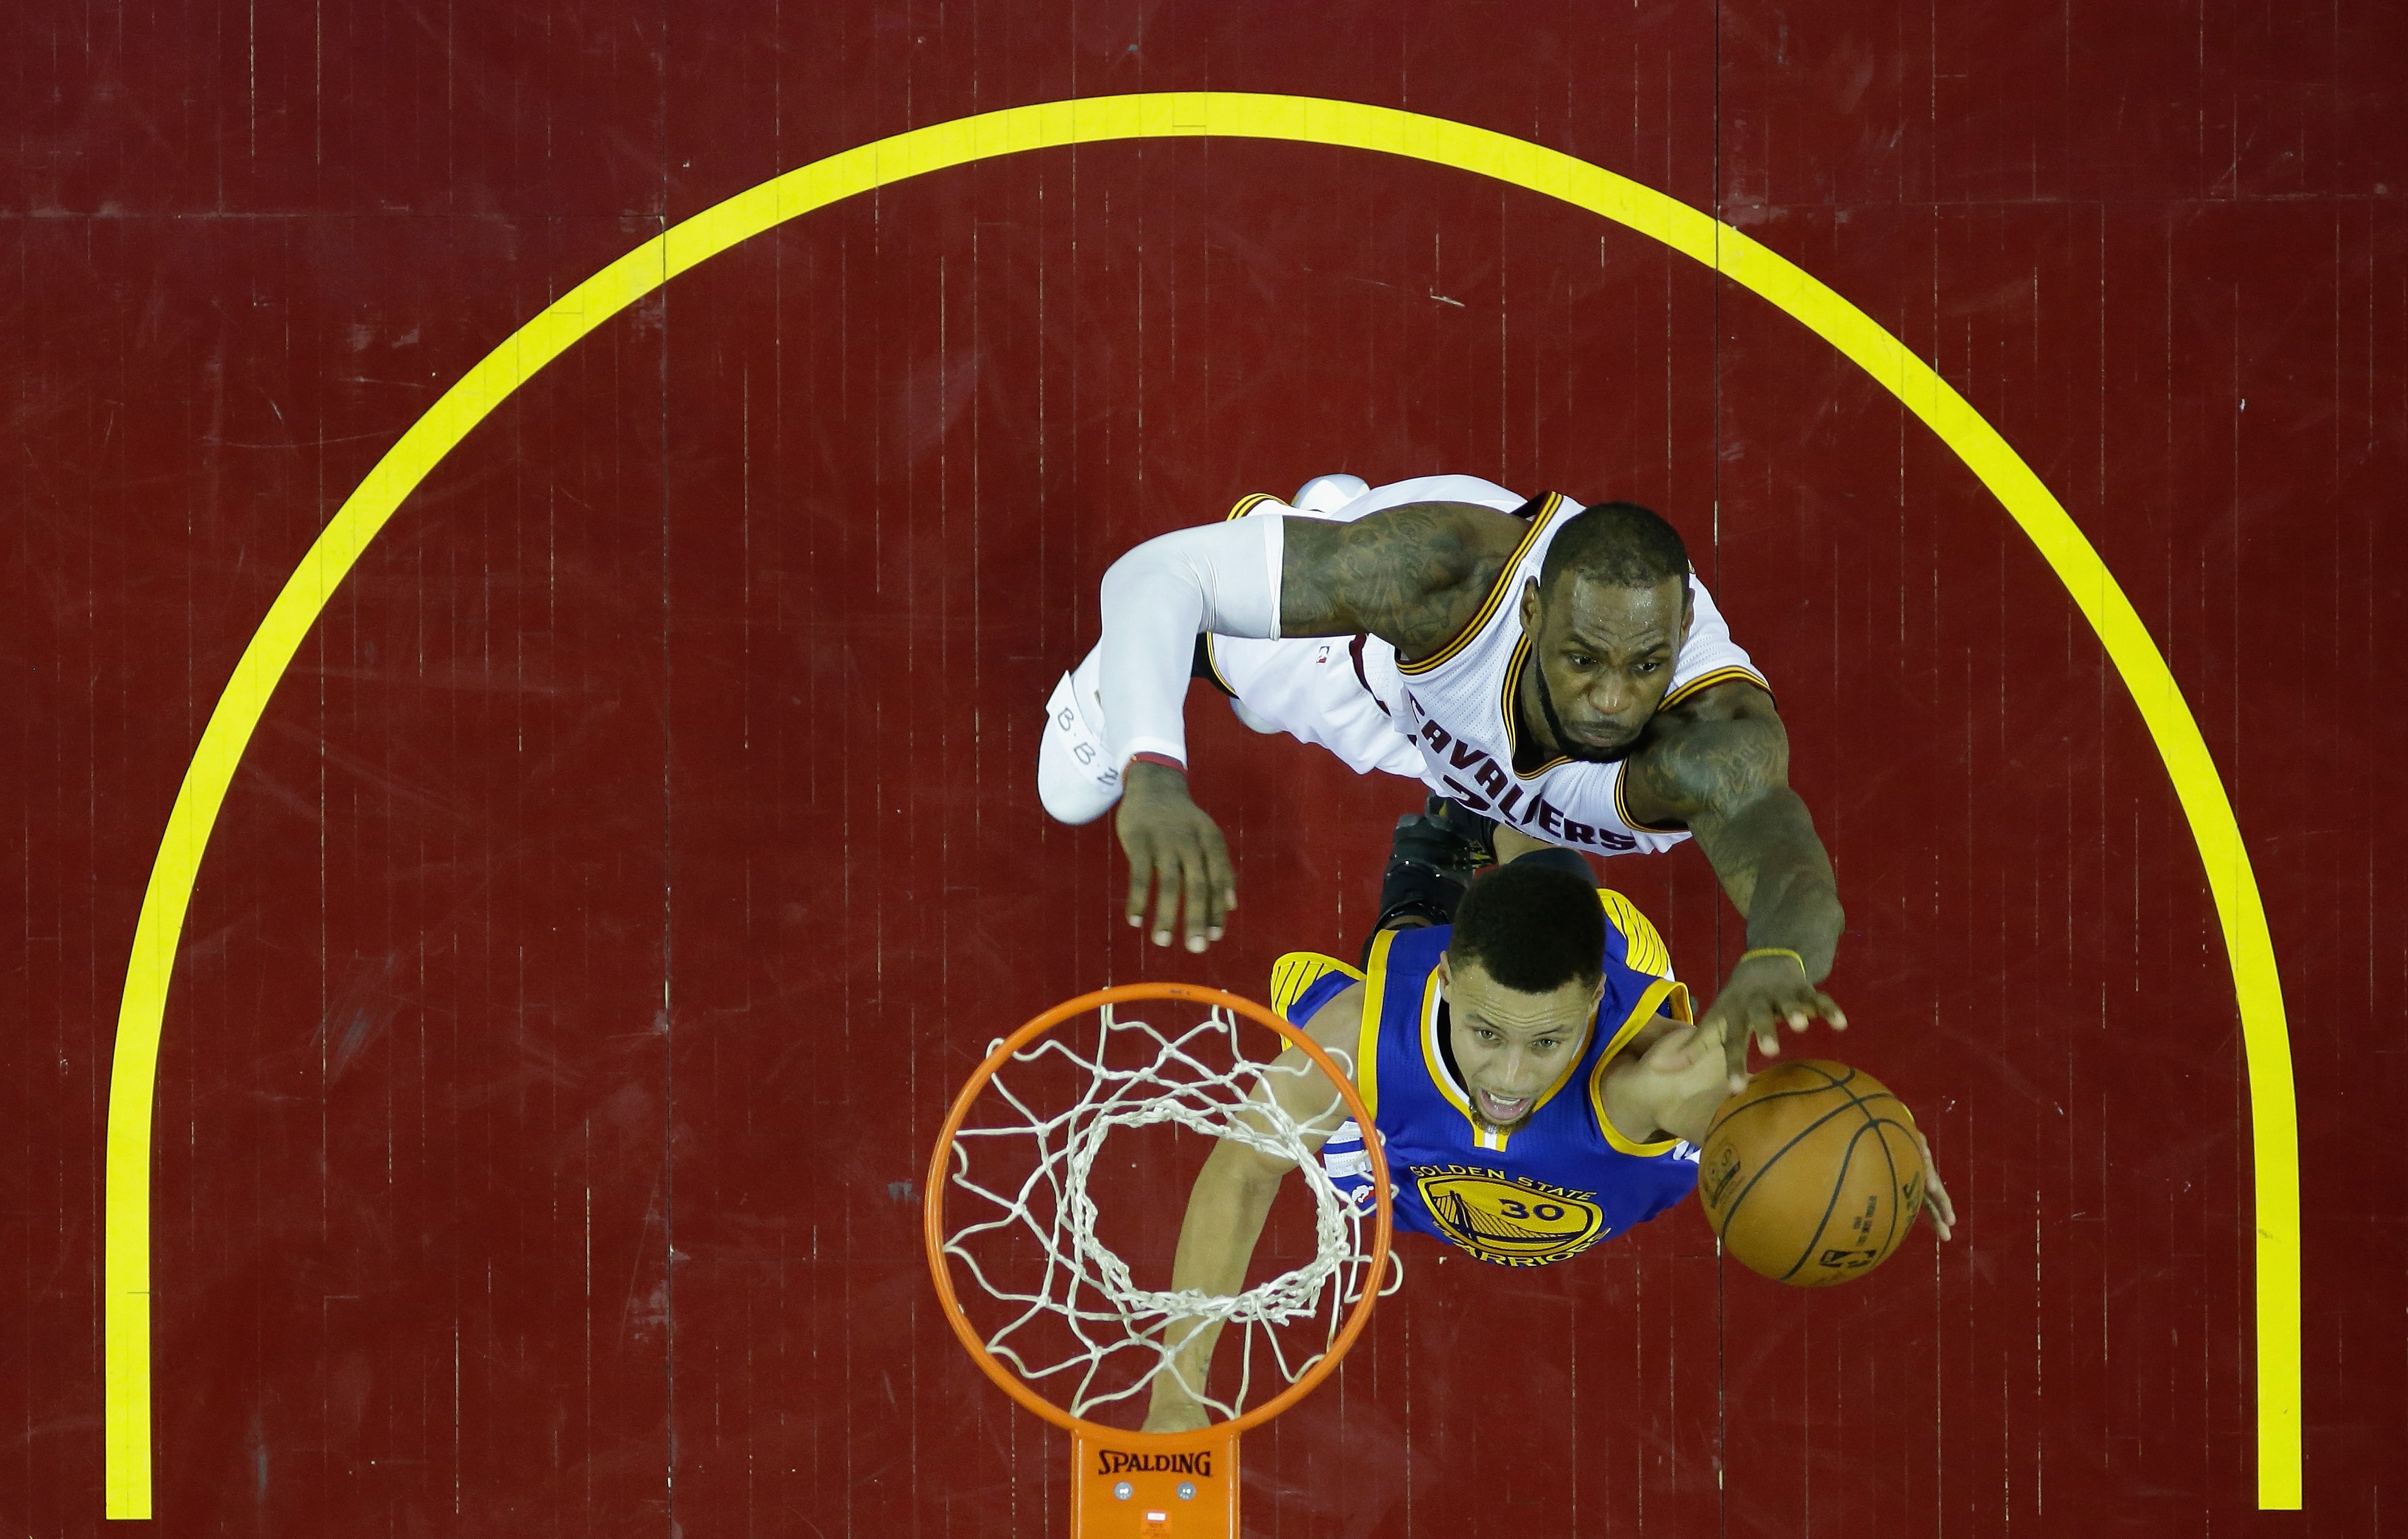 Stephen Curry drives to the basket as he is about to get blocked by LeBron James in Game Six of the 2016 NBA Finals.